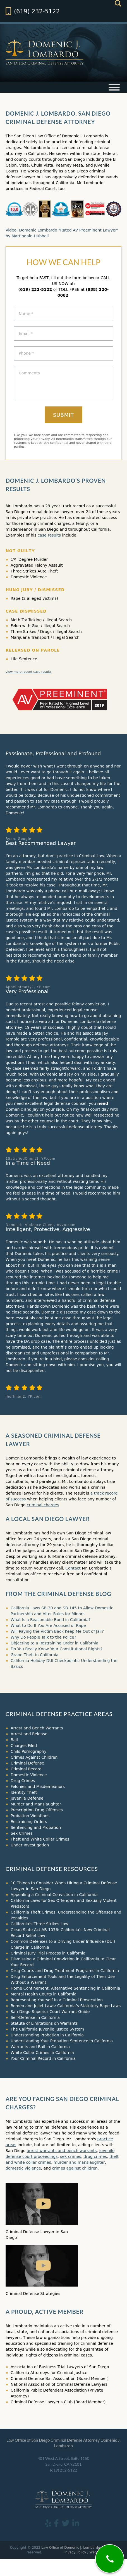 Law Office of Domenic J. Lombardo - San Diego CA Lawyers